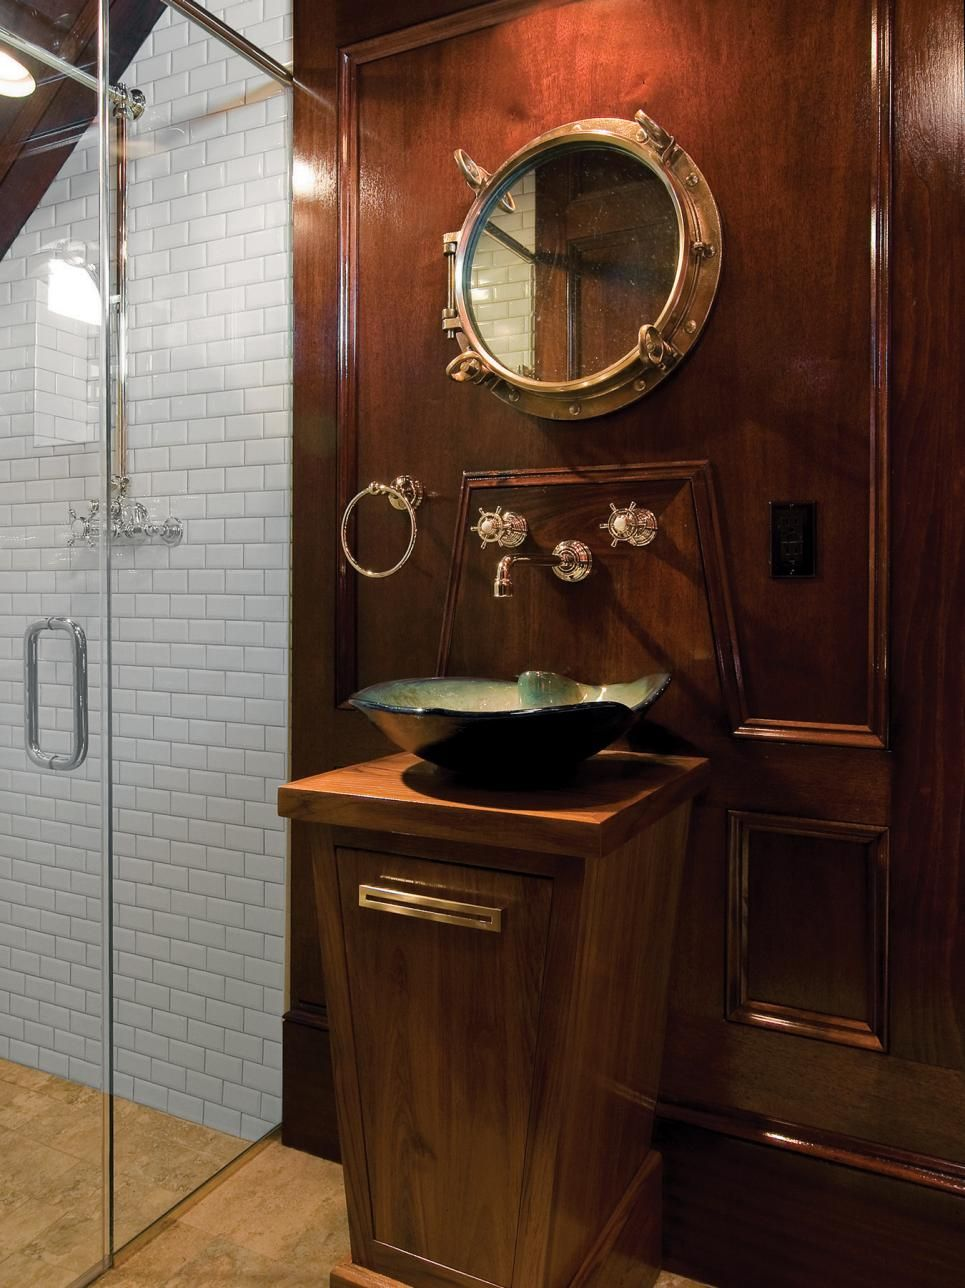 This Elegant Pool Bath Is Fit For The Captain S Quarters Of An Old Time Sailing Vessel